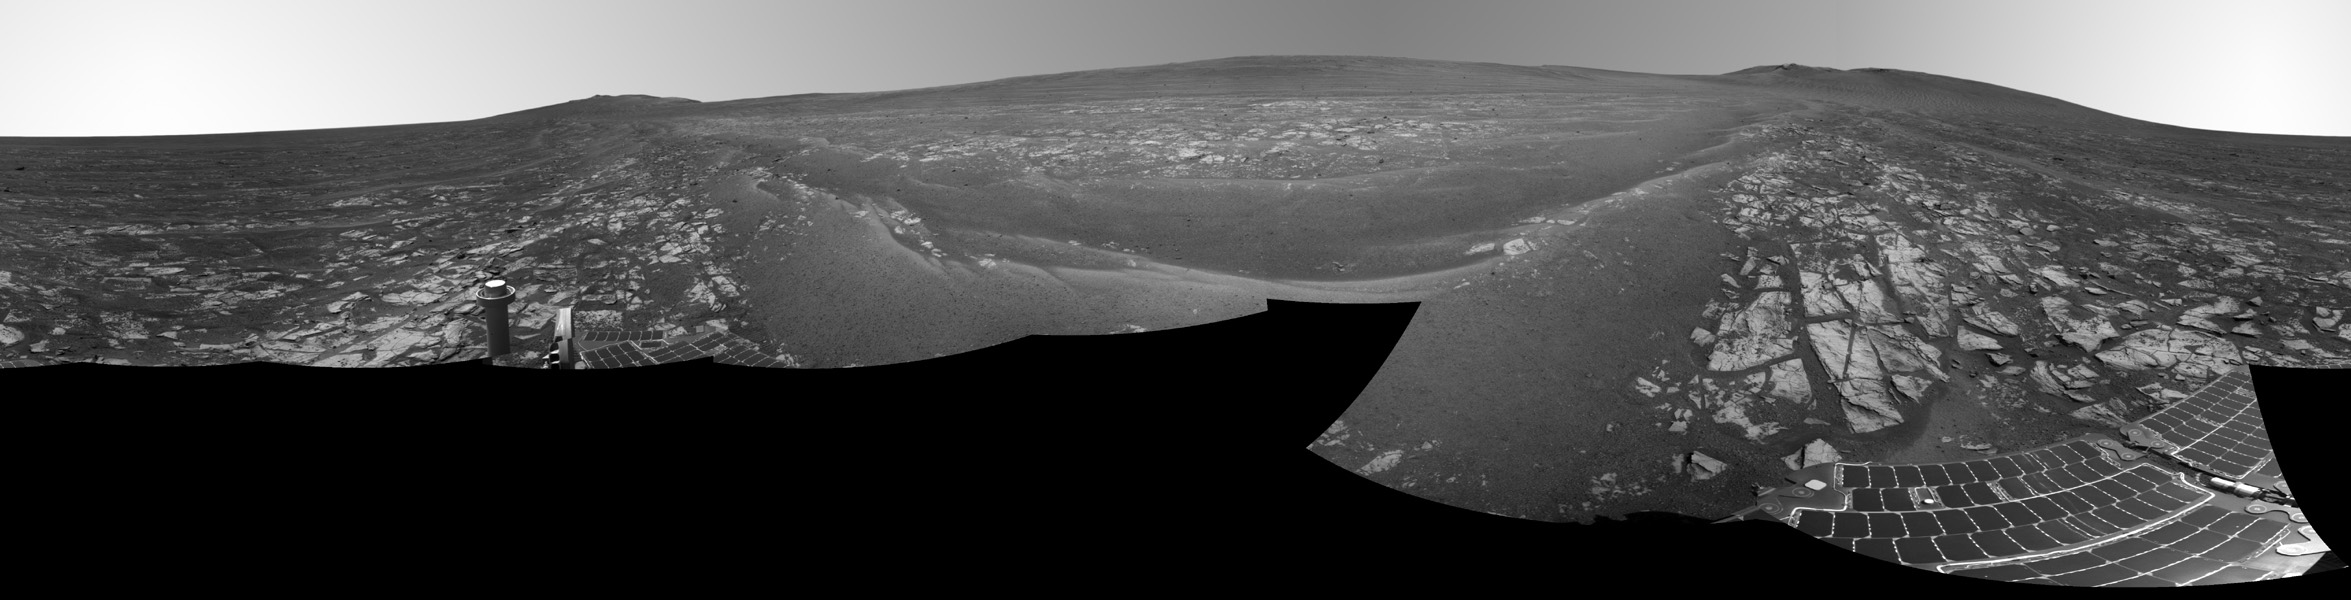 This July 29, 2014, panorama combines several images from the navigation camera on NASA's Mars Exploration Rover Opportunity to show the rover's surroundings after surpassing 25 miles (40.23 kilometers) of total driving on Mars.